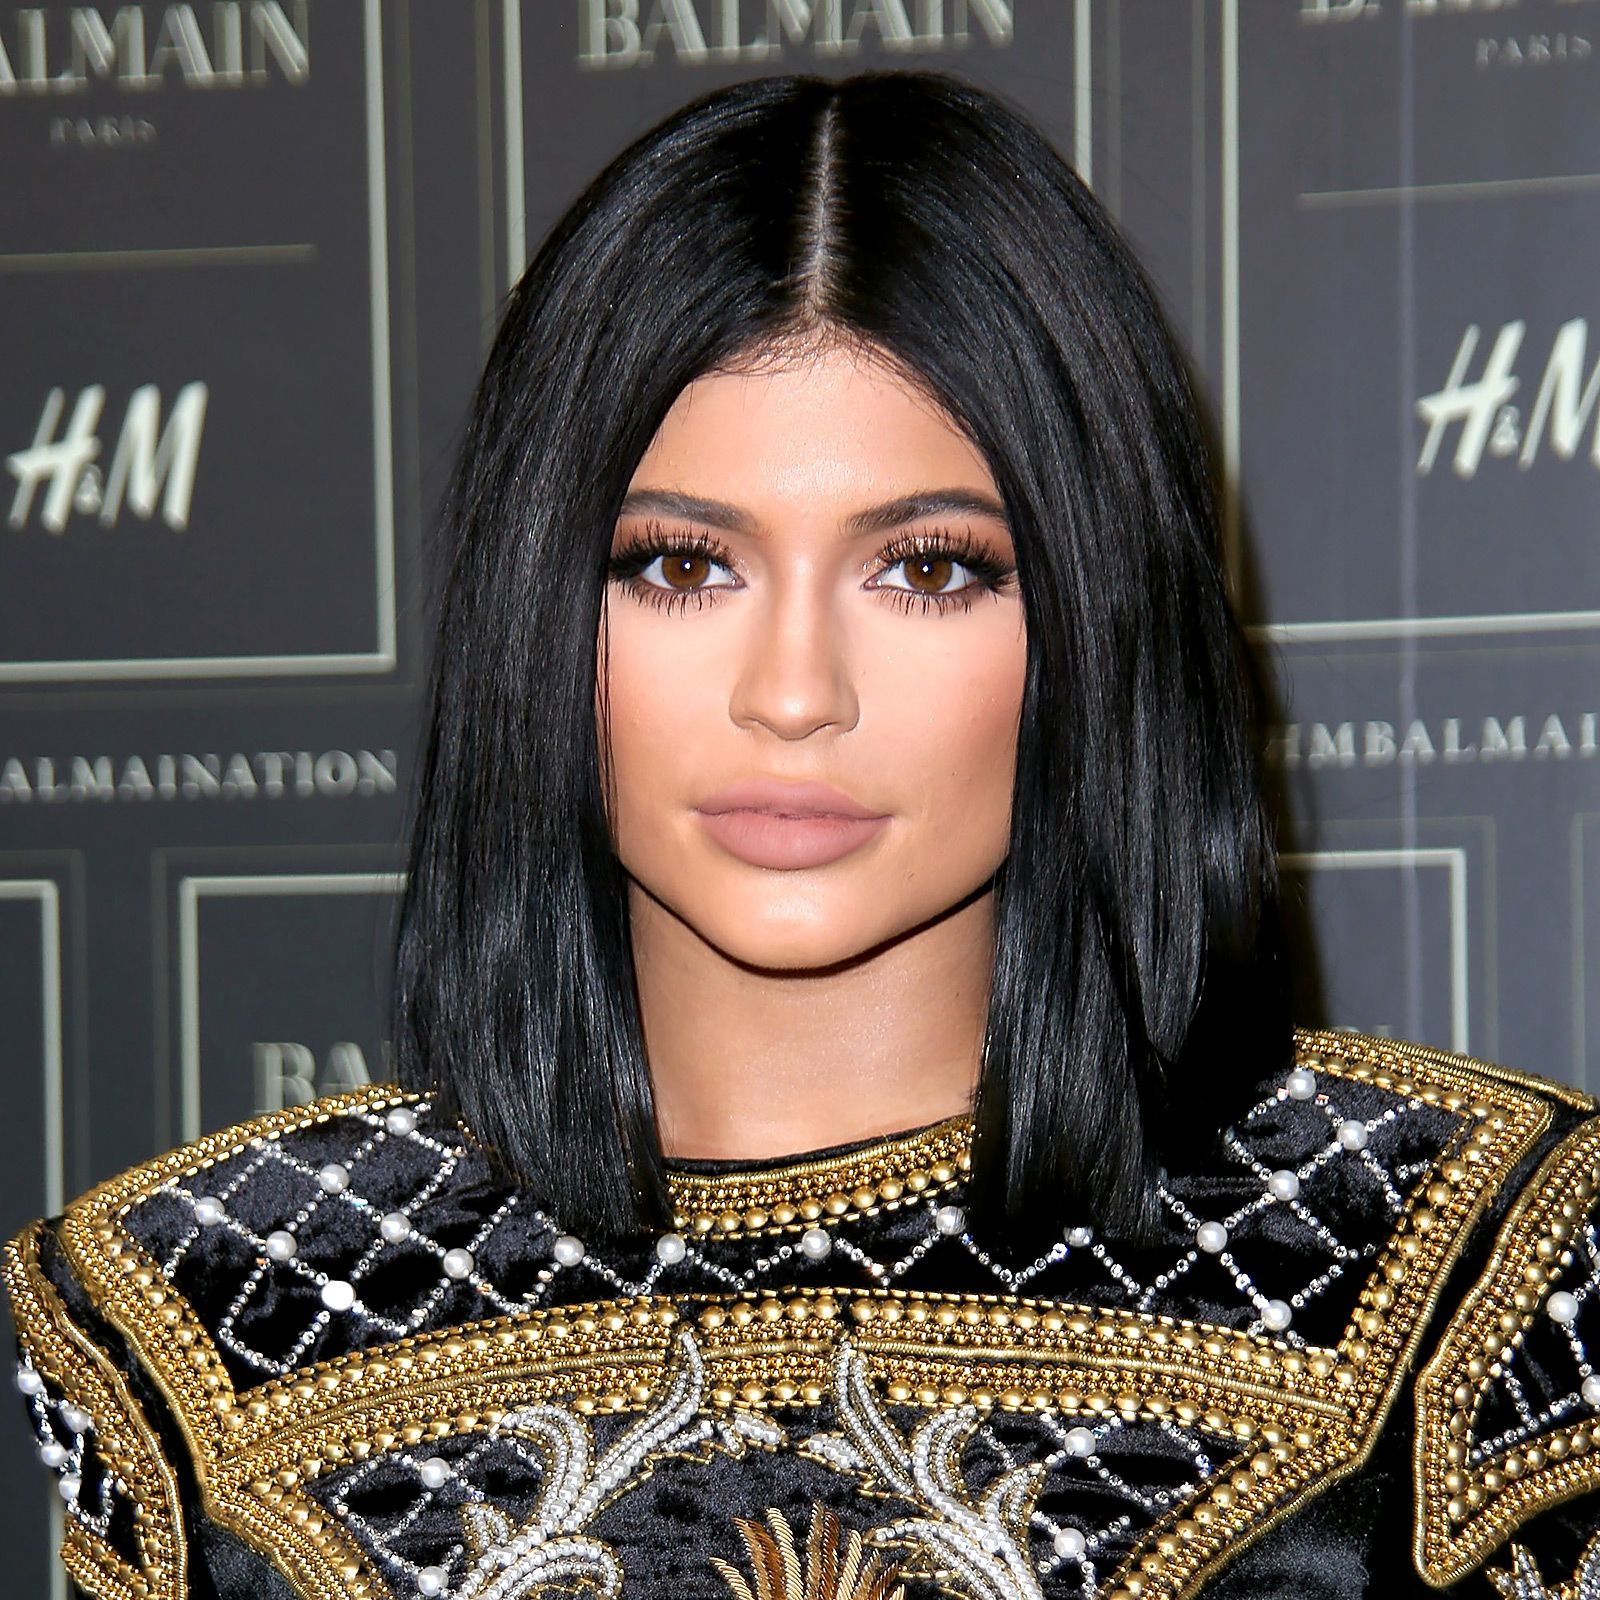 Kylie Jenner Reveals That She Wants Her Lips to Look Small